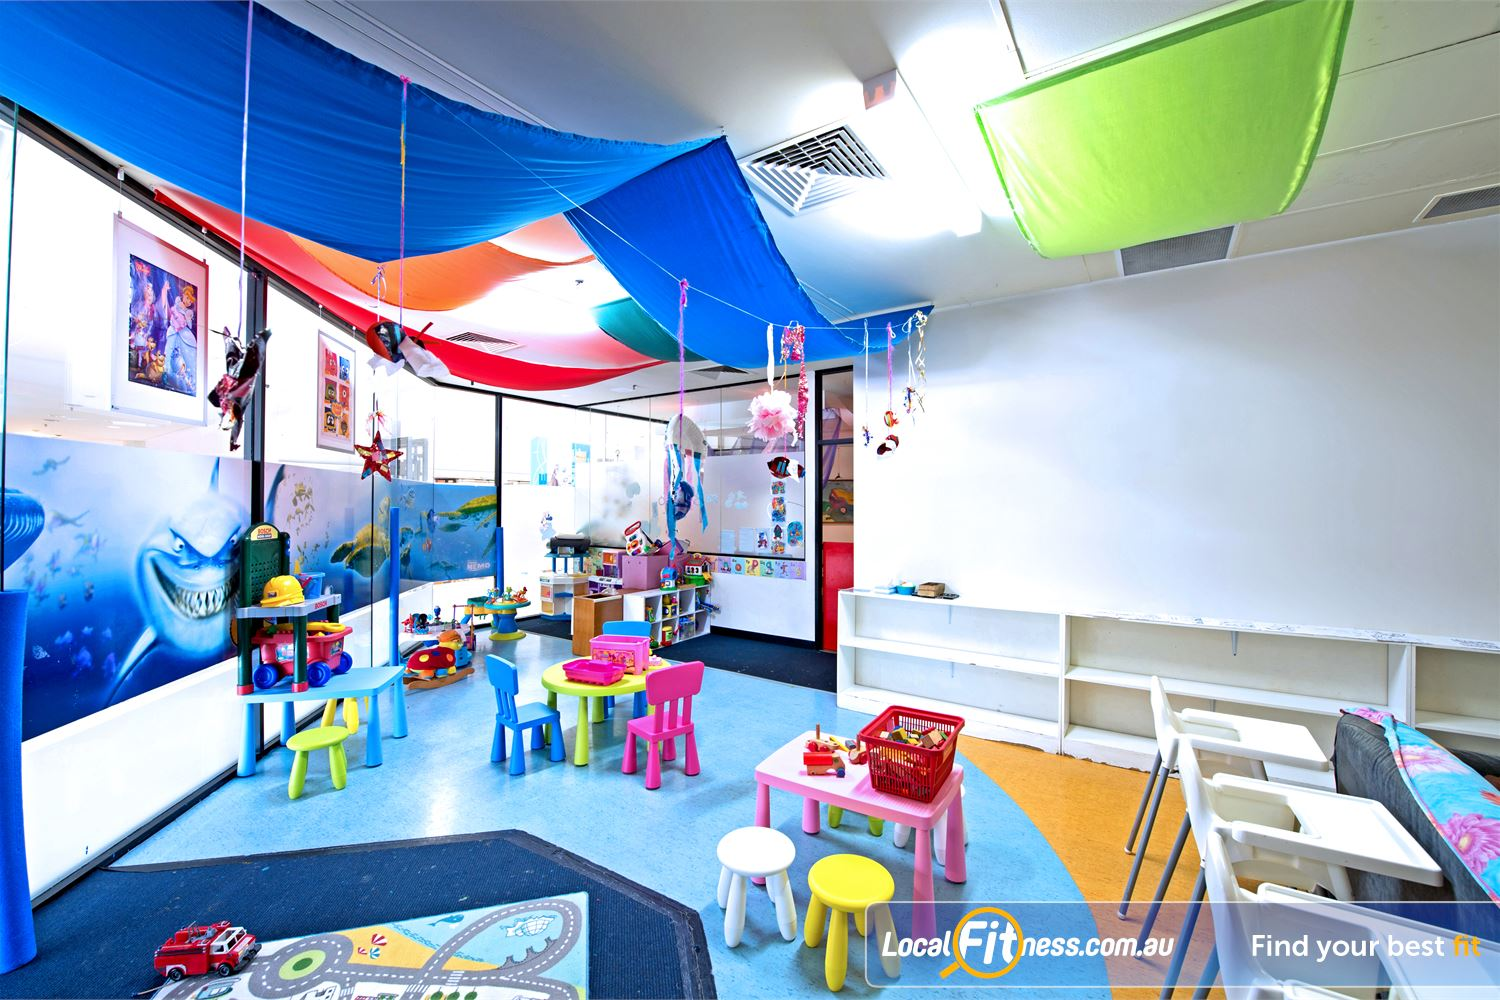 Goodlife Health Clubs Cottesloe Our worry-free child-care are lets you focus on training while we take care of the little ones.